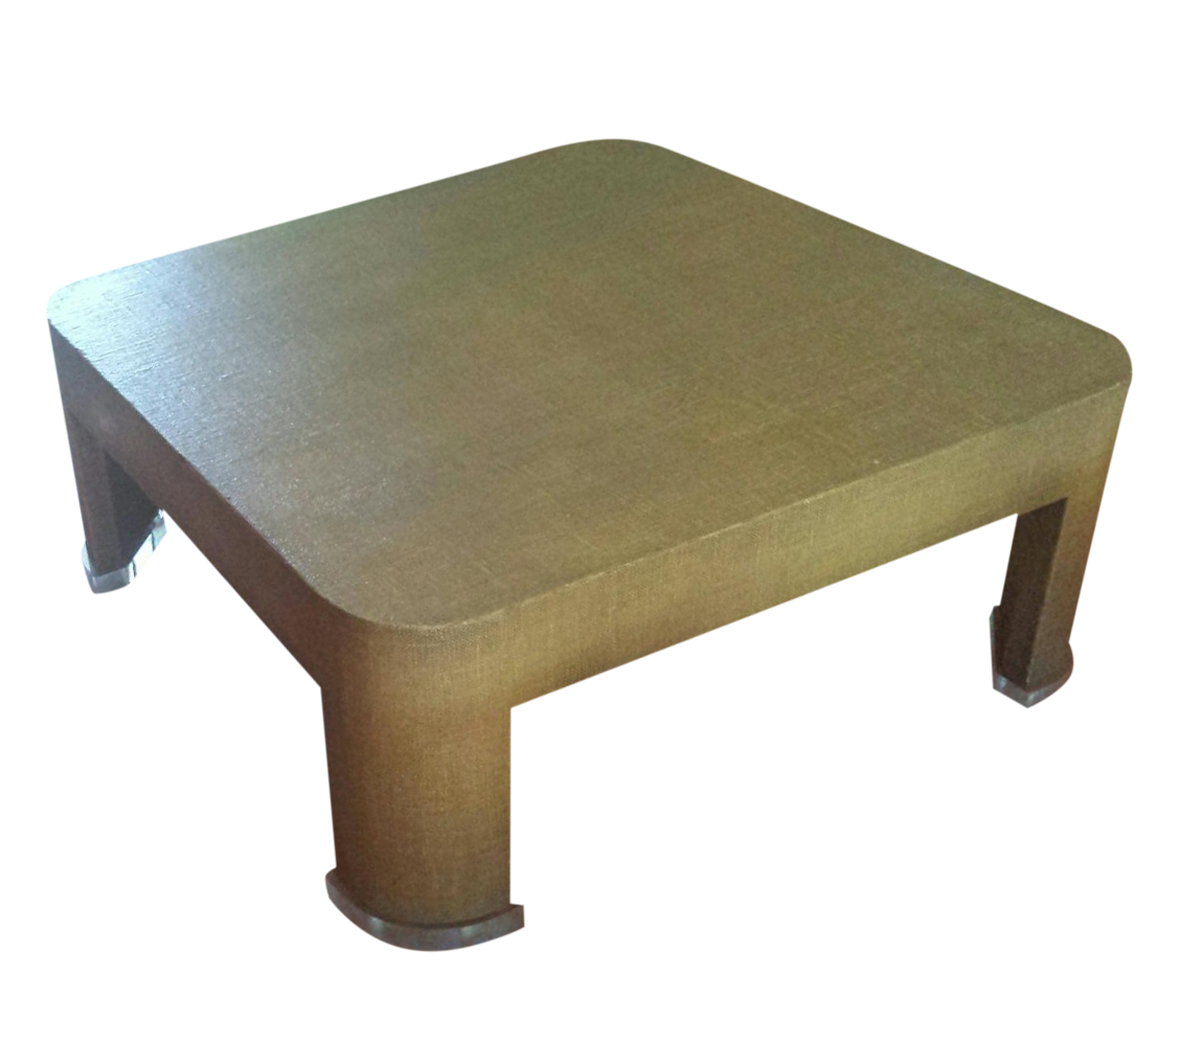 square grasscloth coffee table after karl springer | chairish